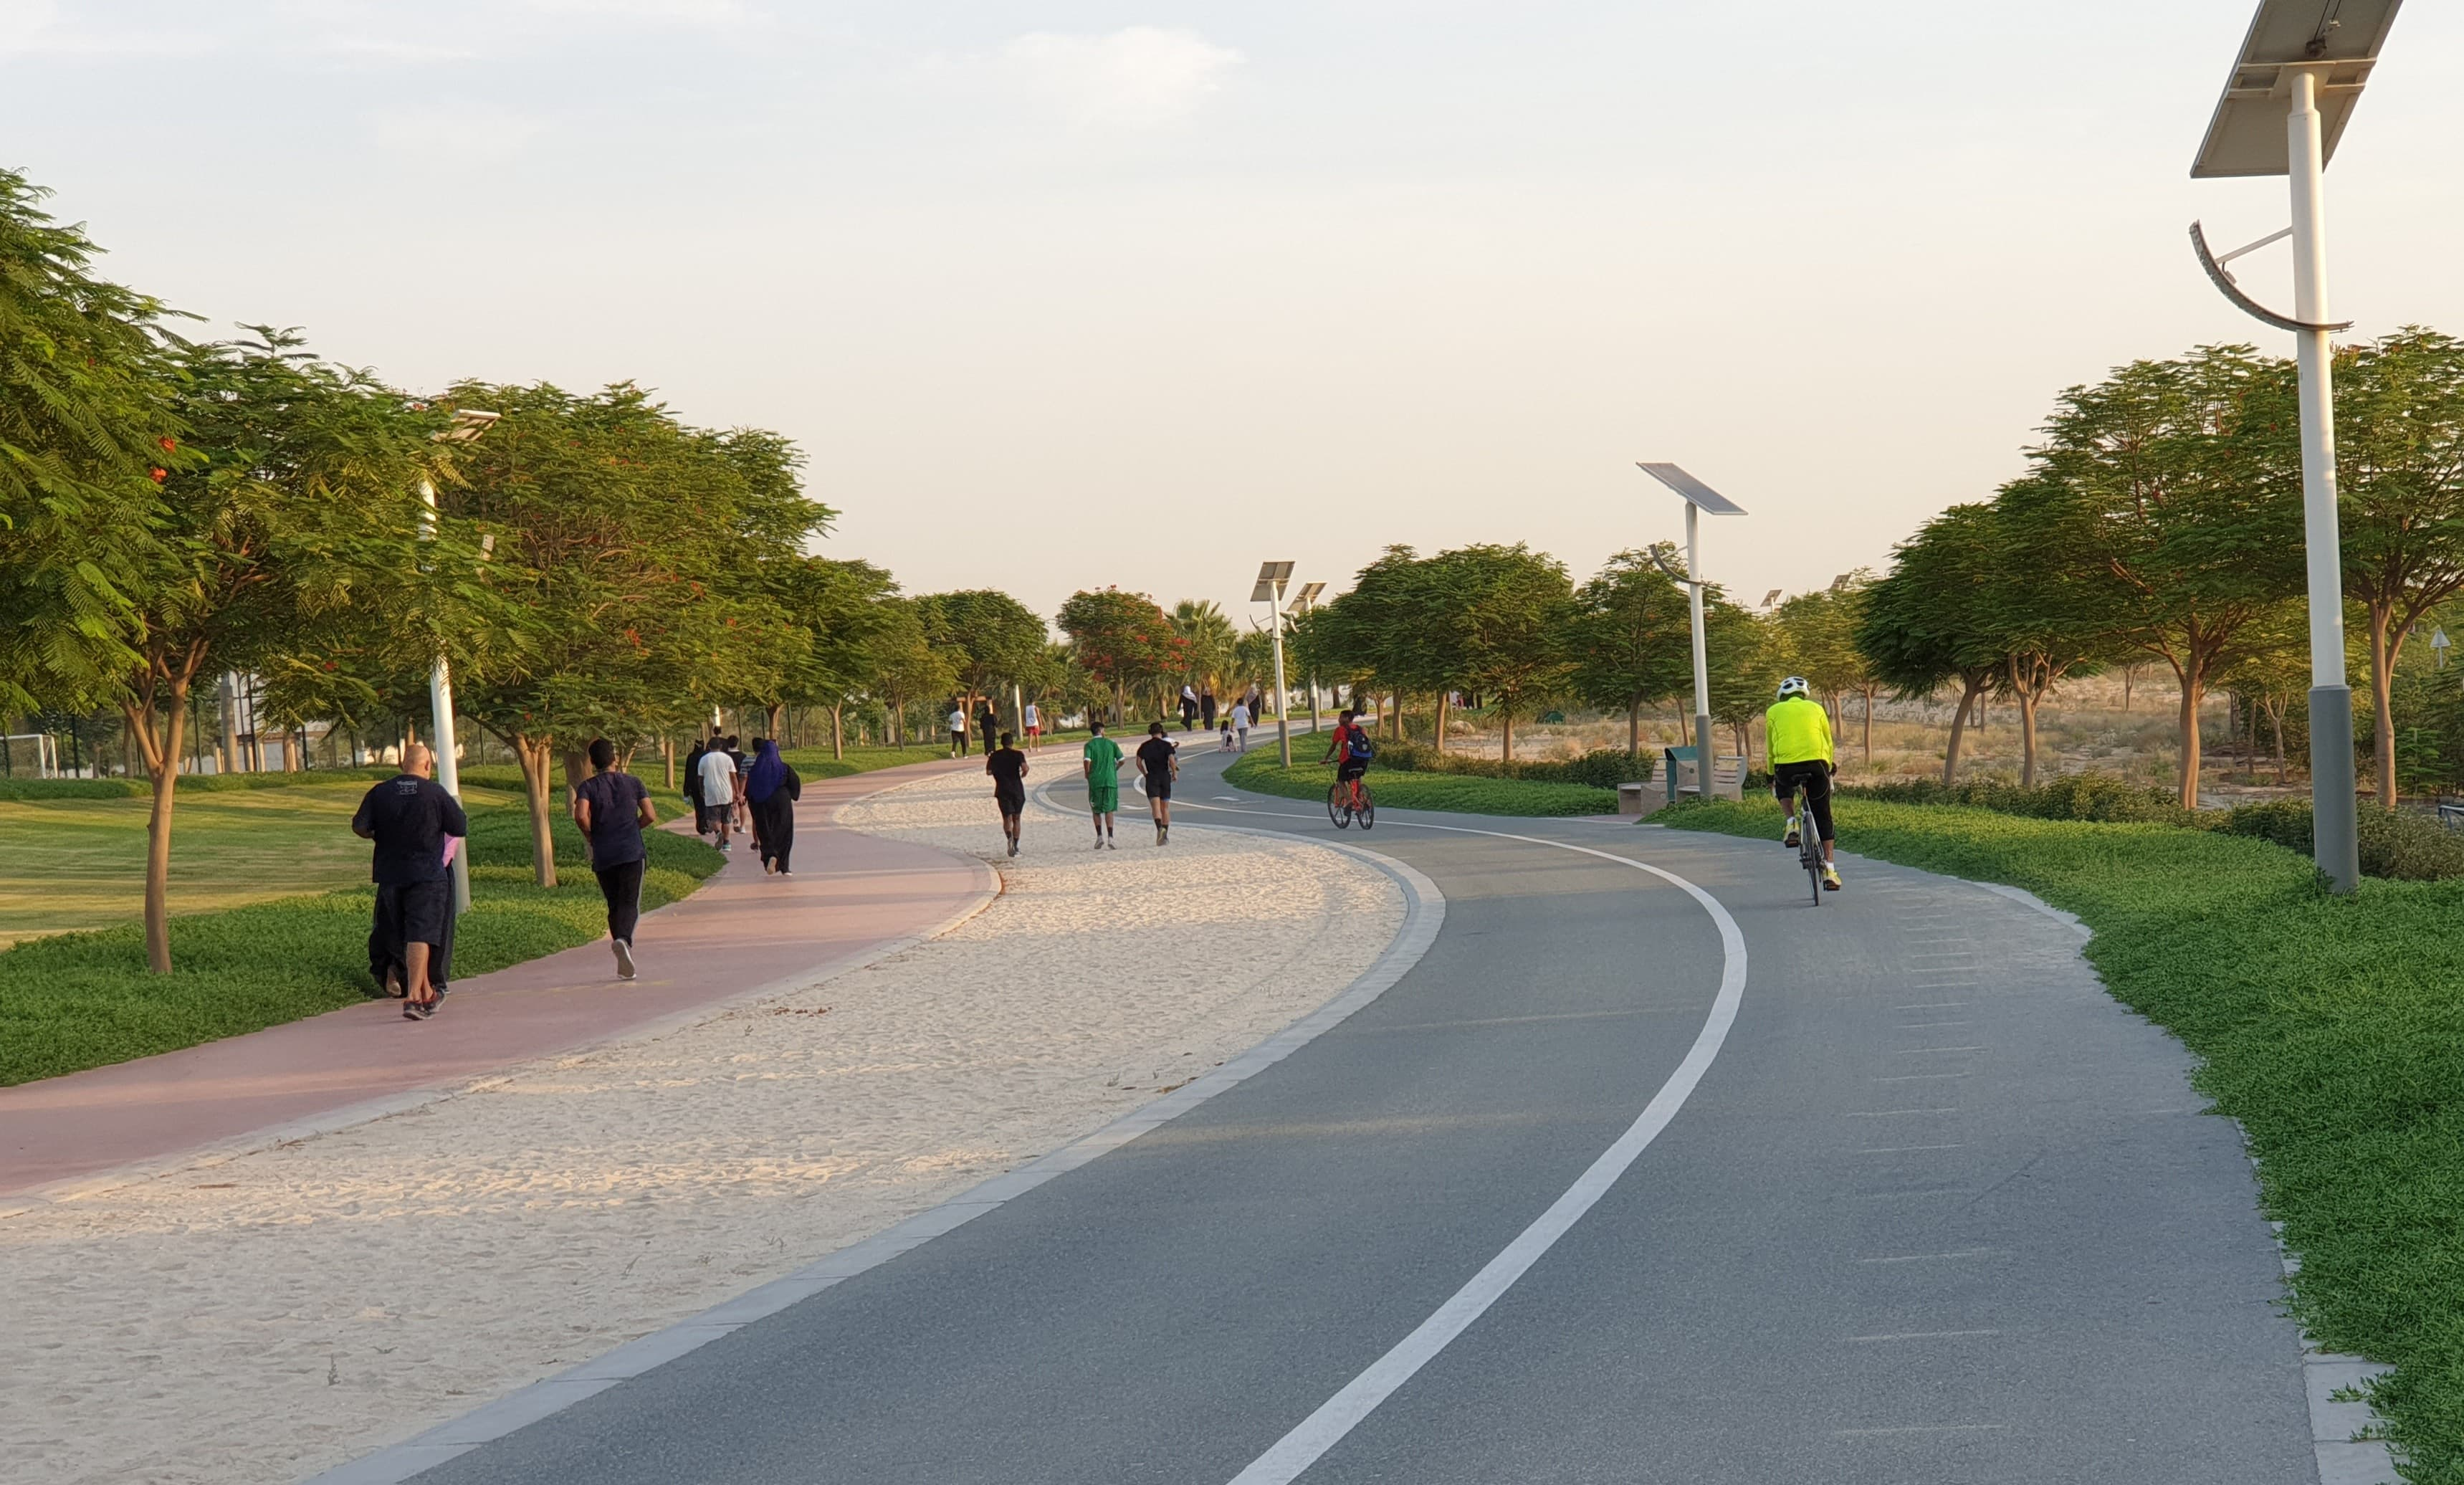 Surprisingly, the number of people walking and cycling around the parks and on the streets had doubled compared to normal days.